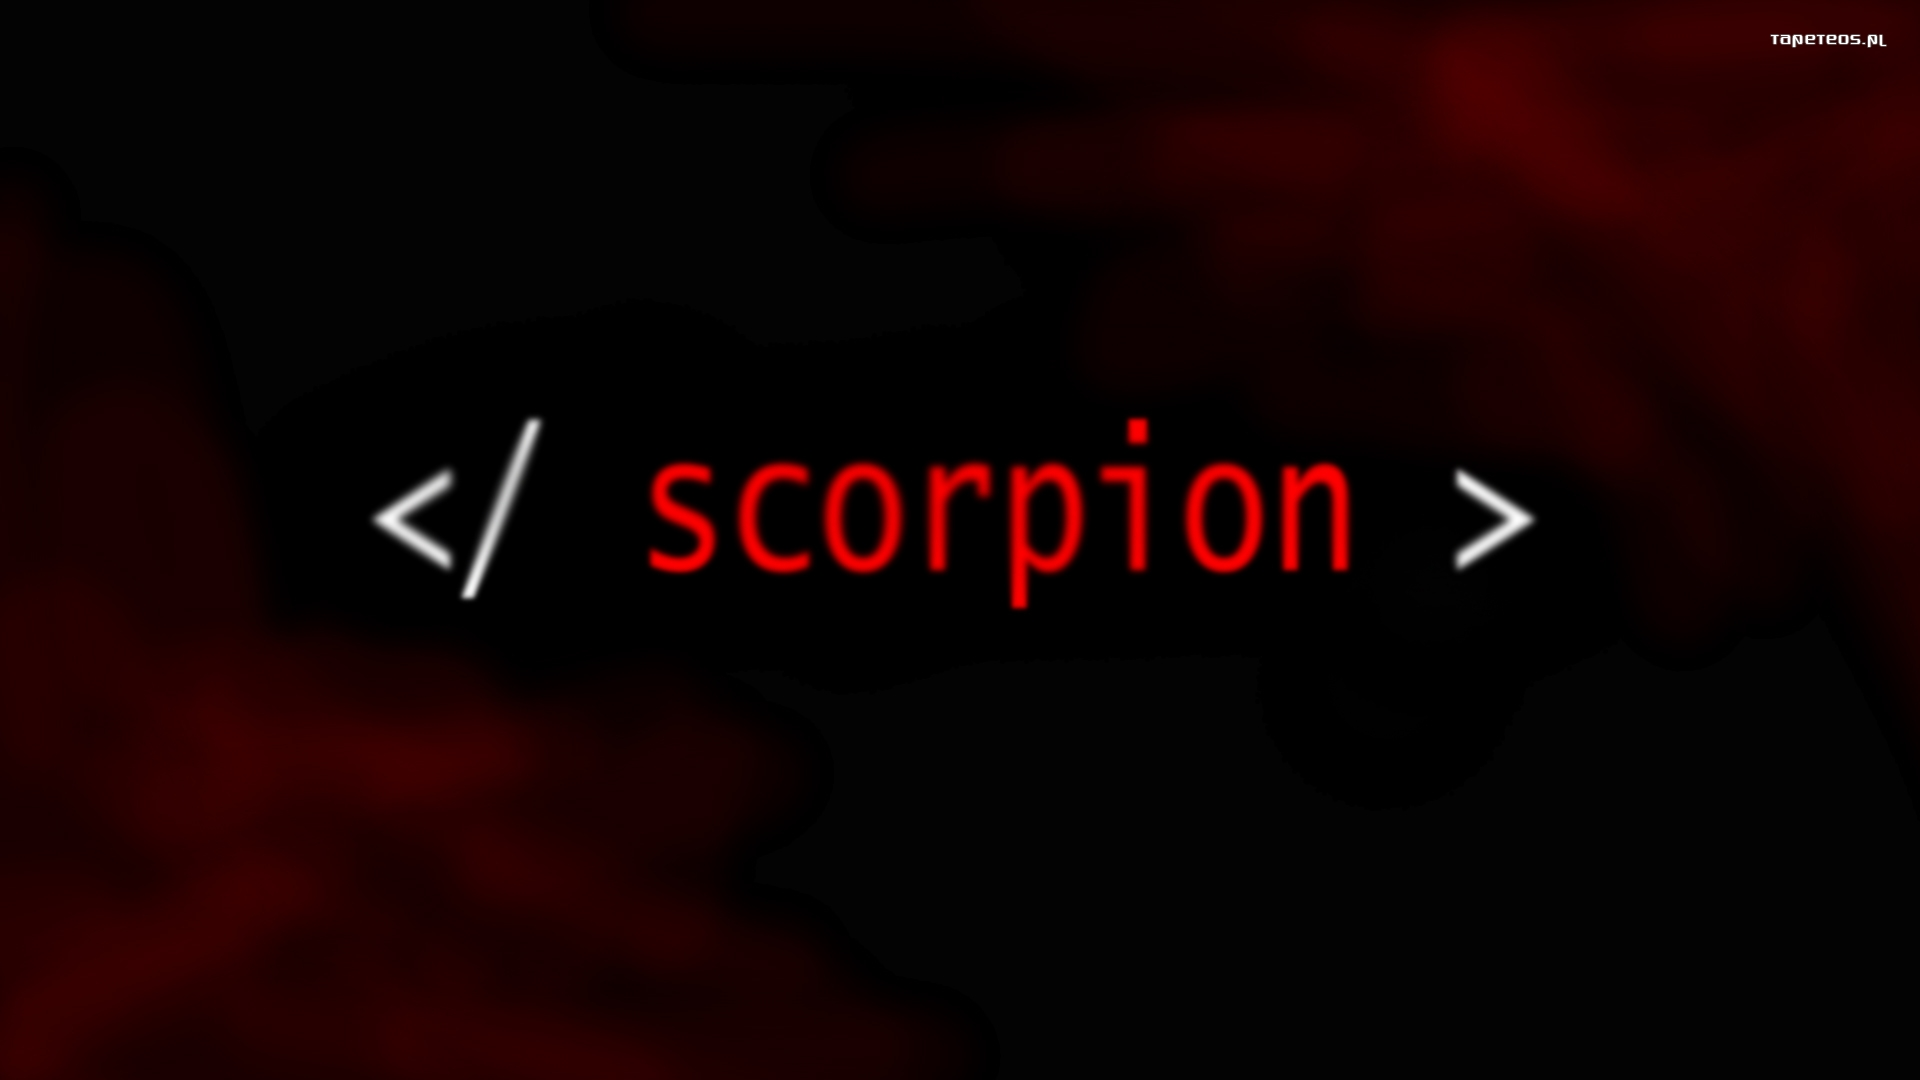 Skorpion 2014 TV Scorpion 002 Logo